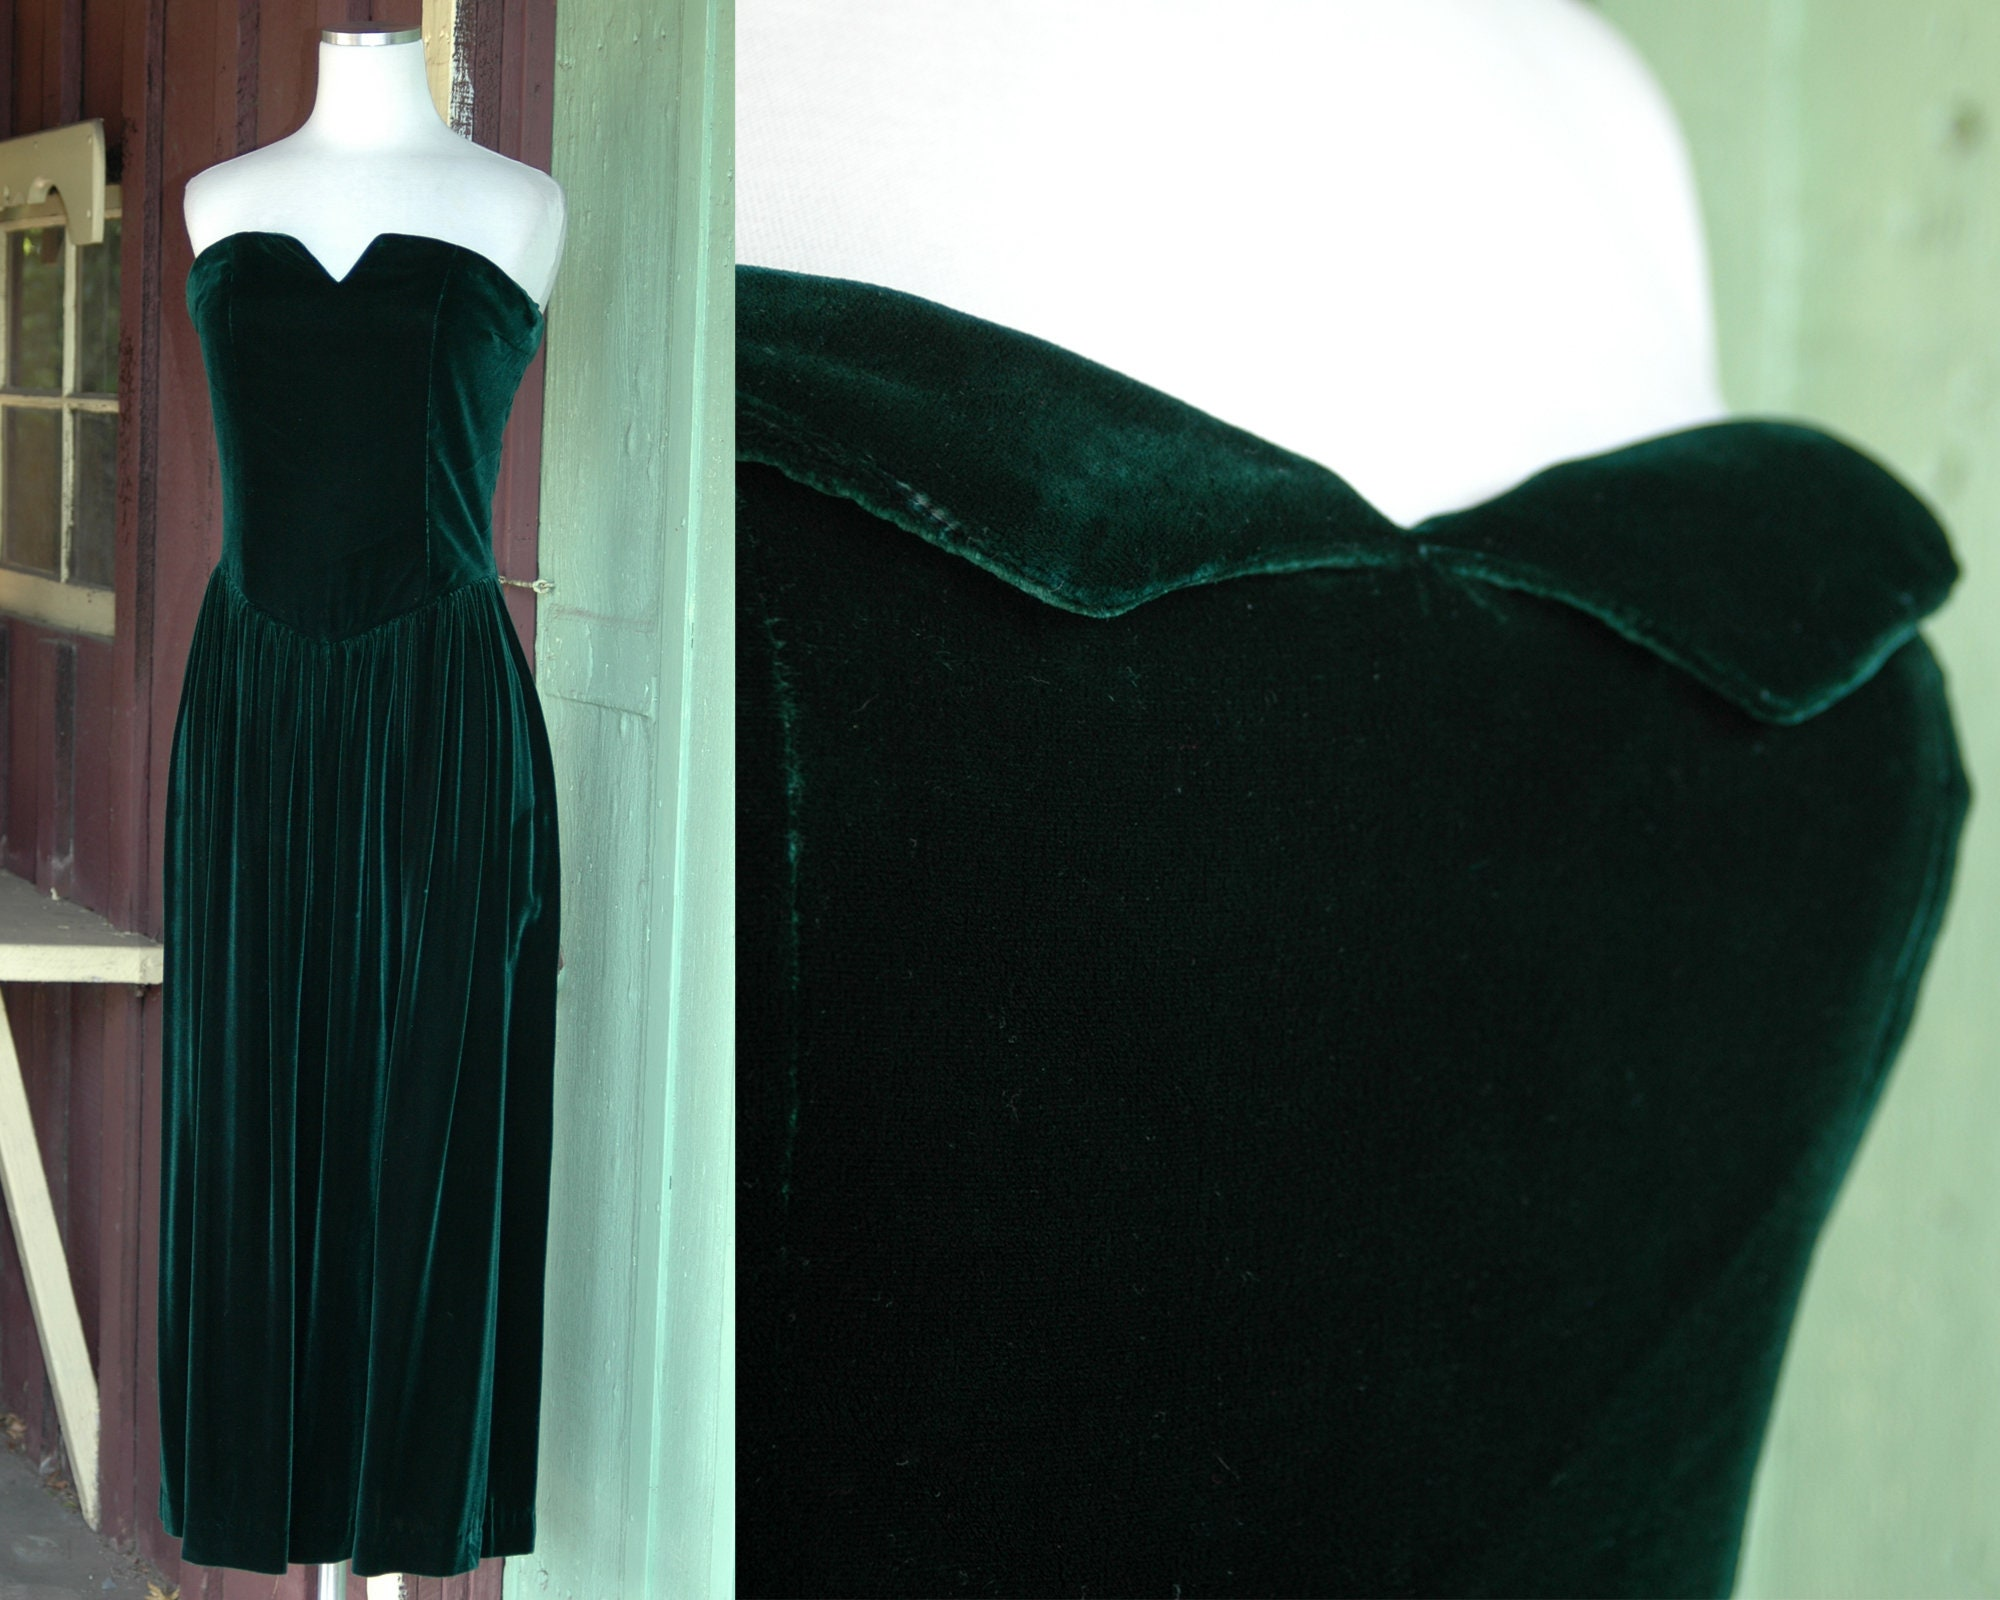 80s Dresses | Casual to Party Dresses Holiday 1980S 1990S Forrest Green Velvet Strapless Gown  80S 90S Evening Party Dress $0.00 AT vintagedancer.com